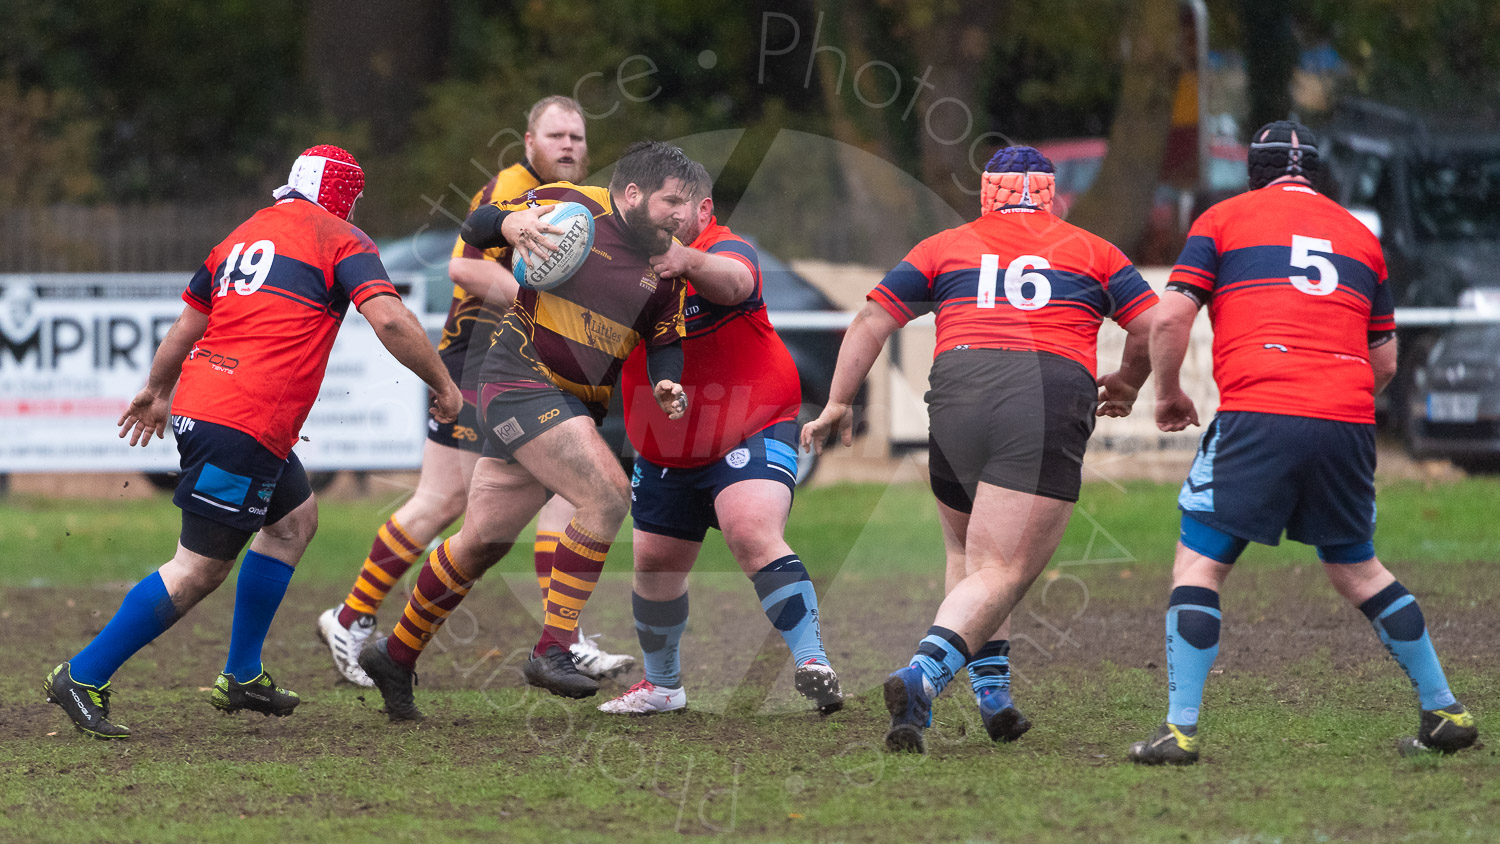 20181027 Amp Extras vs St Neots 2nd XV #2753